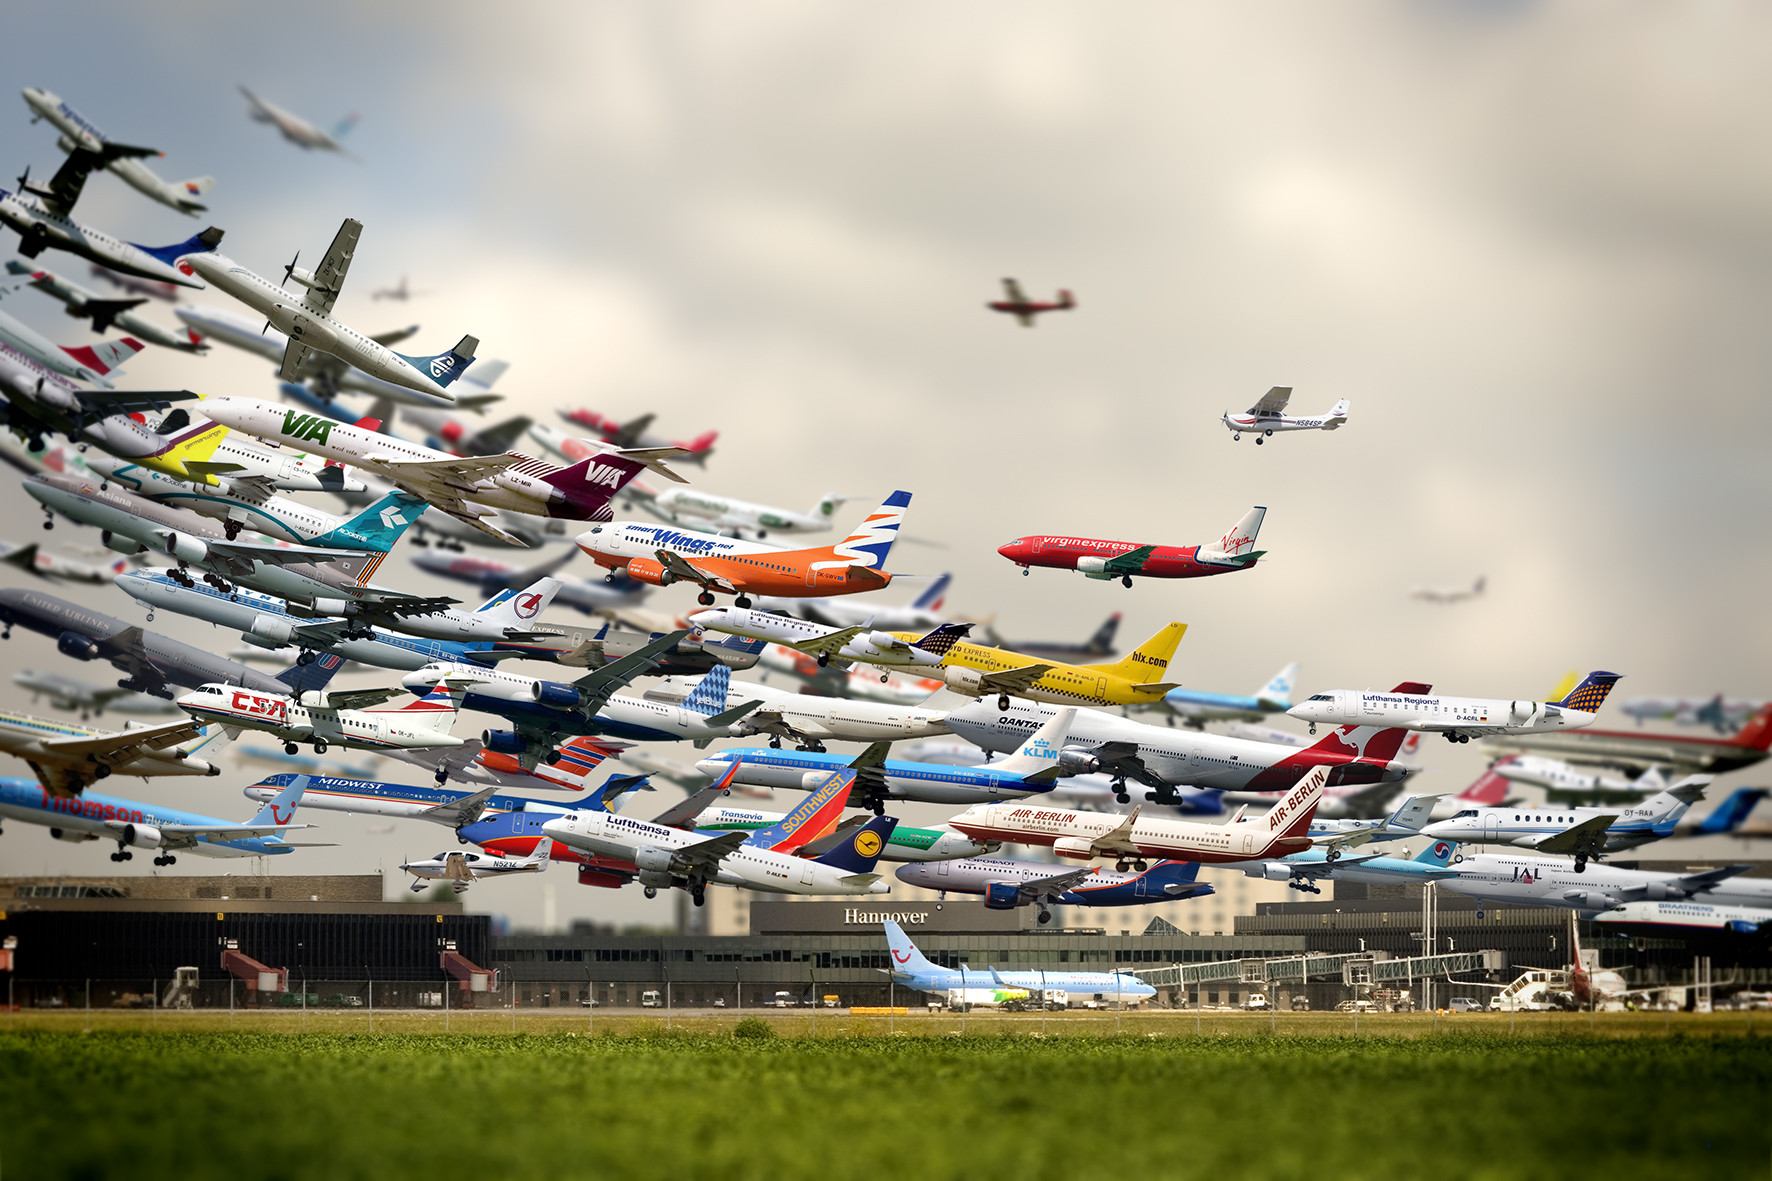 XEmCJ1 composite shot of hundreds of planes taking off at hanover airport,Funny Airport Quotes